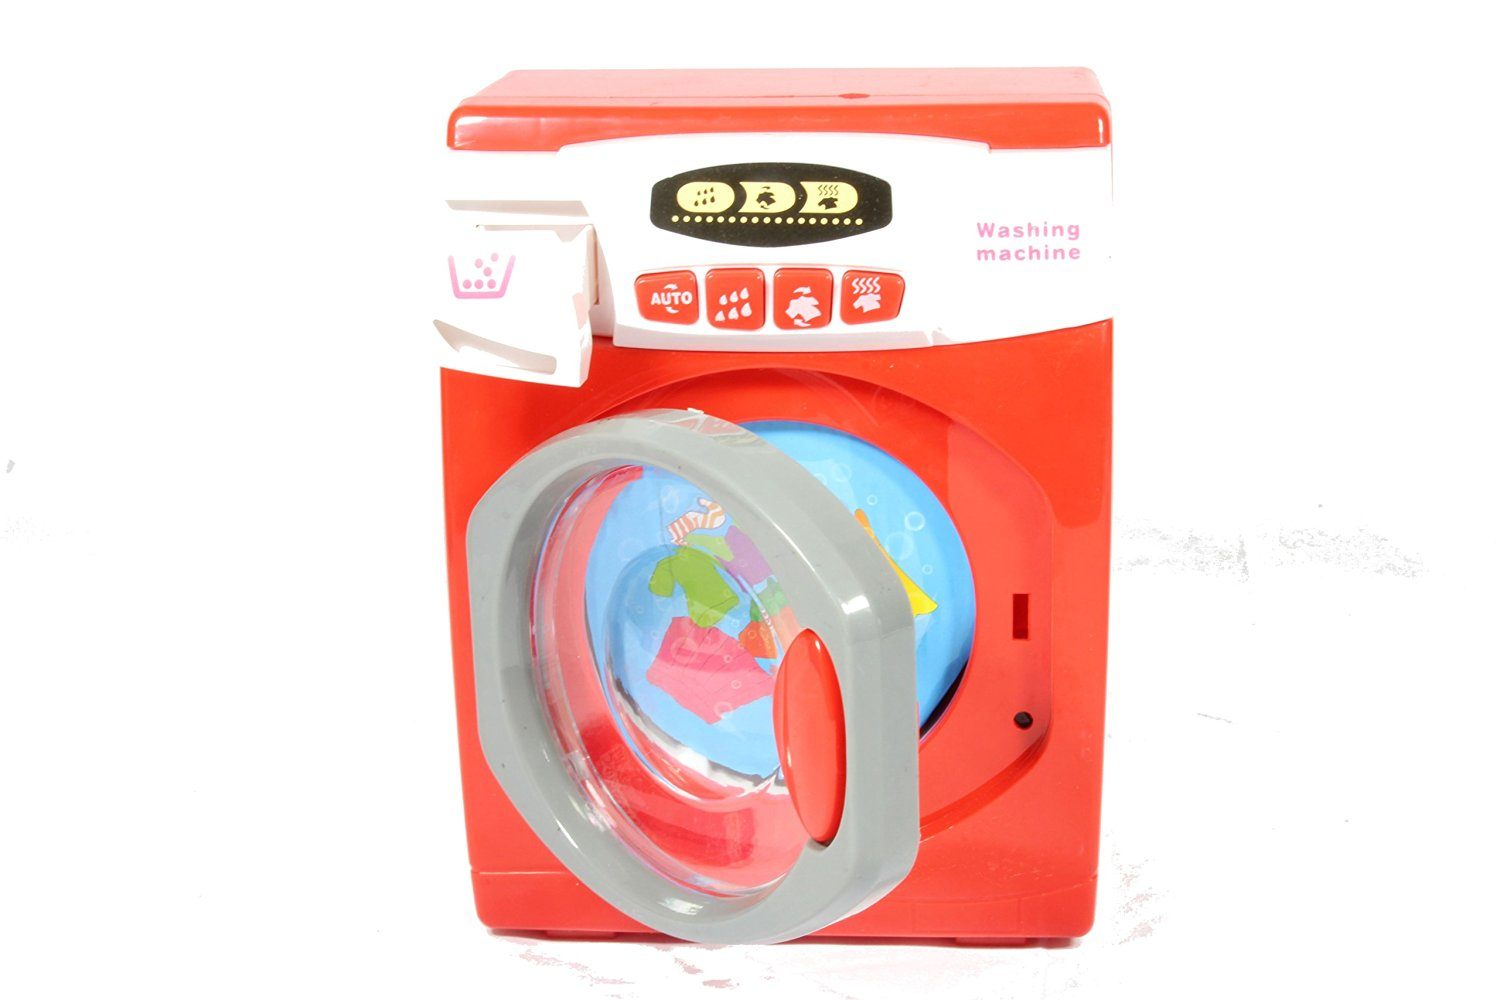 Pretend Play Battery Operated Laundry Toy Washing Machine Play Set w/ Lights, Sounds, Rotating Drum - Play Kreative TM